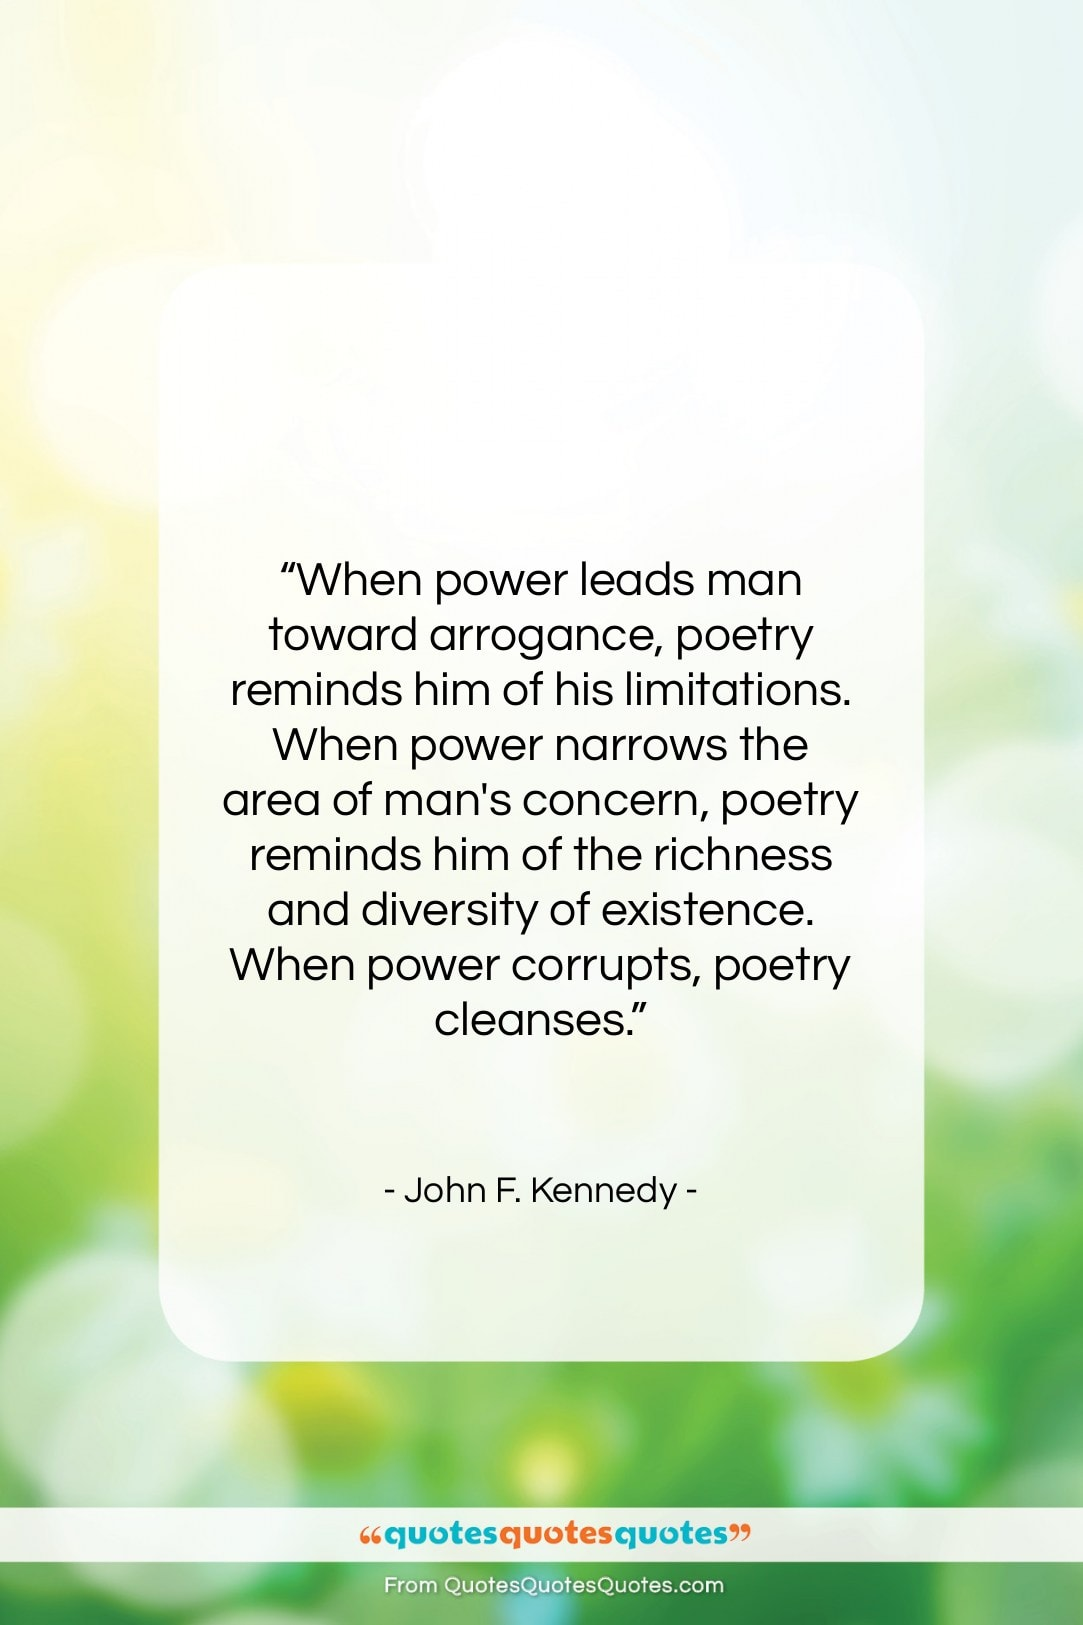 Get the whole john f kennedy quote when power leads man toward arrogance poetry at quotes quotes quotes com